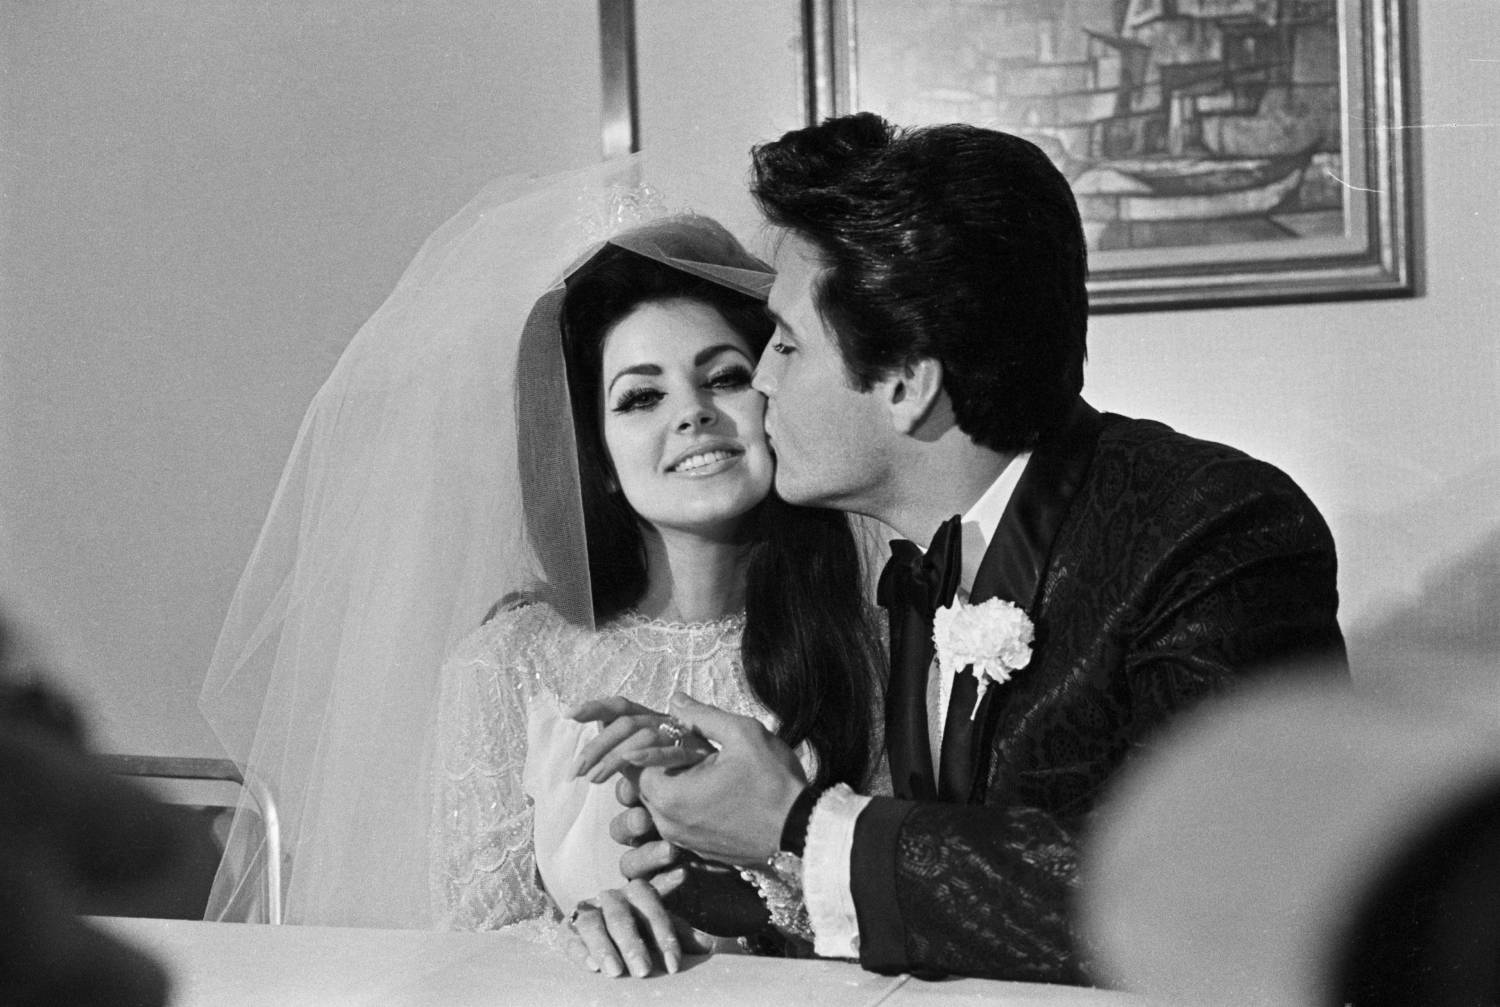 Las Vegas, NV: Elvis Presley gives his new bride, Priscilla Ann Beaulieu, a kiss following their wedding. The bride wears a large diamond on her finger.